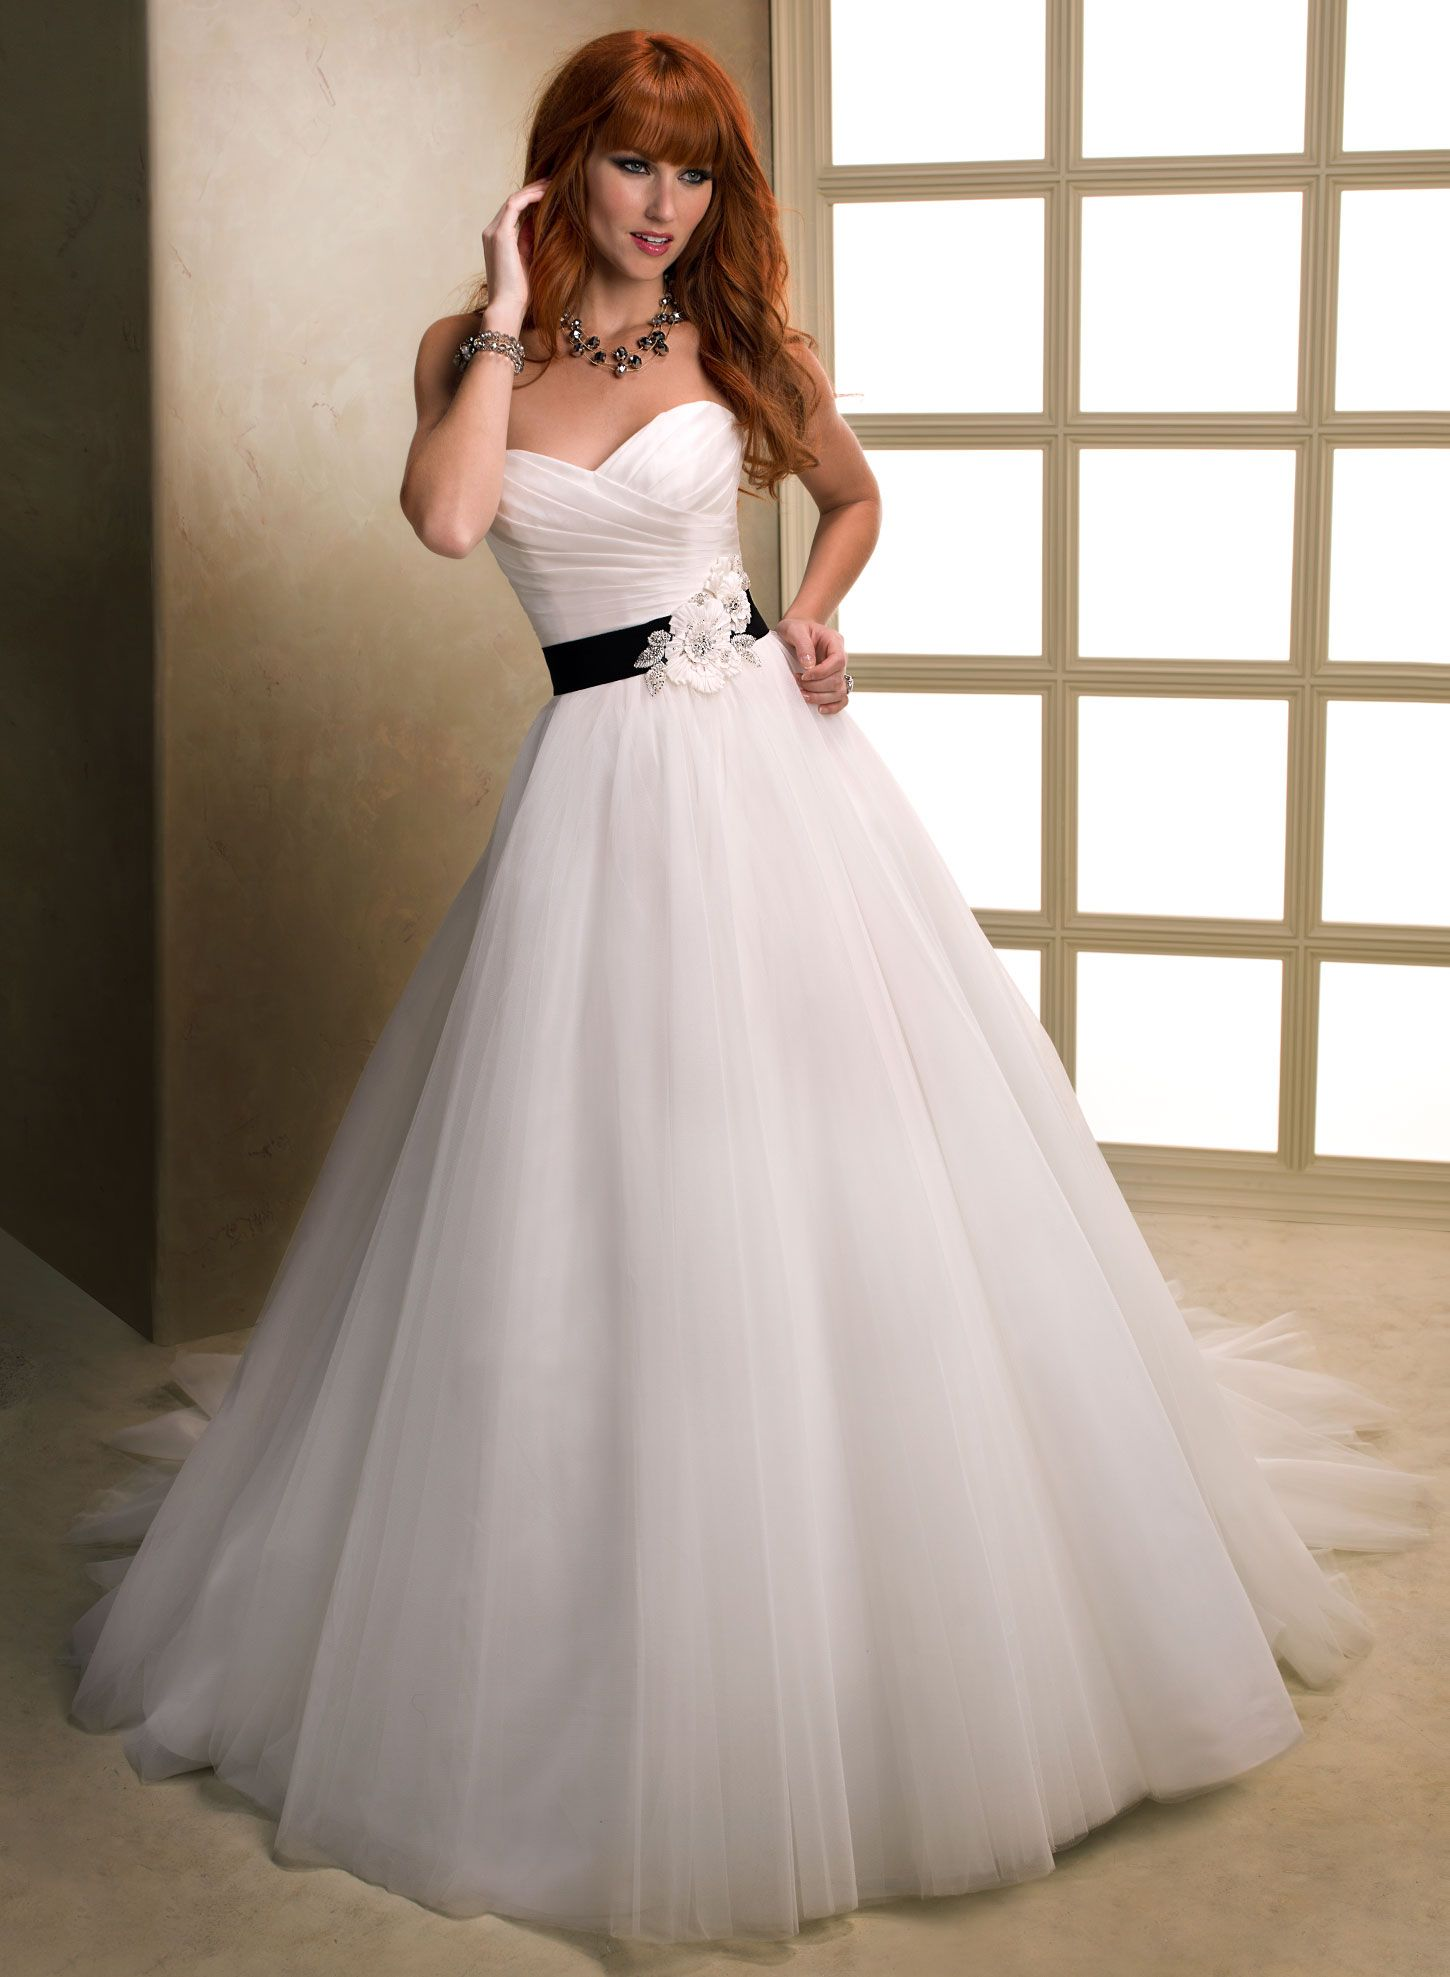 Maggie Sottero Wedding Dresses | Maggie sottero, Bridal suite and ...